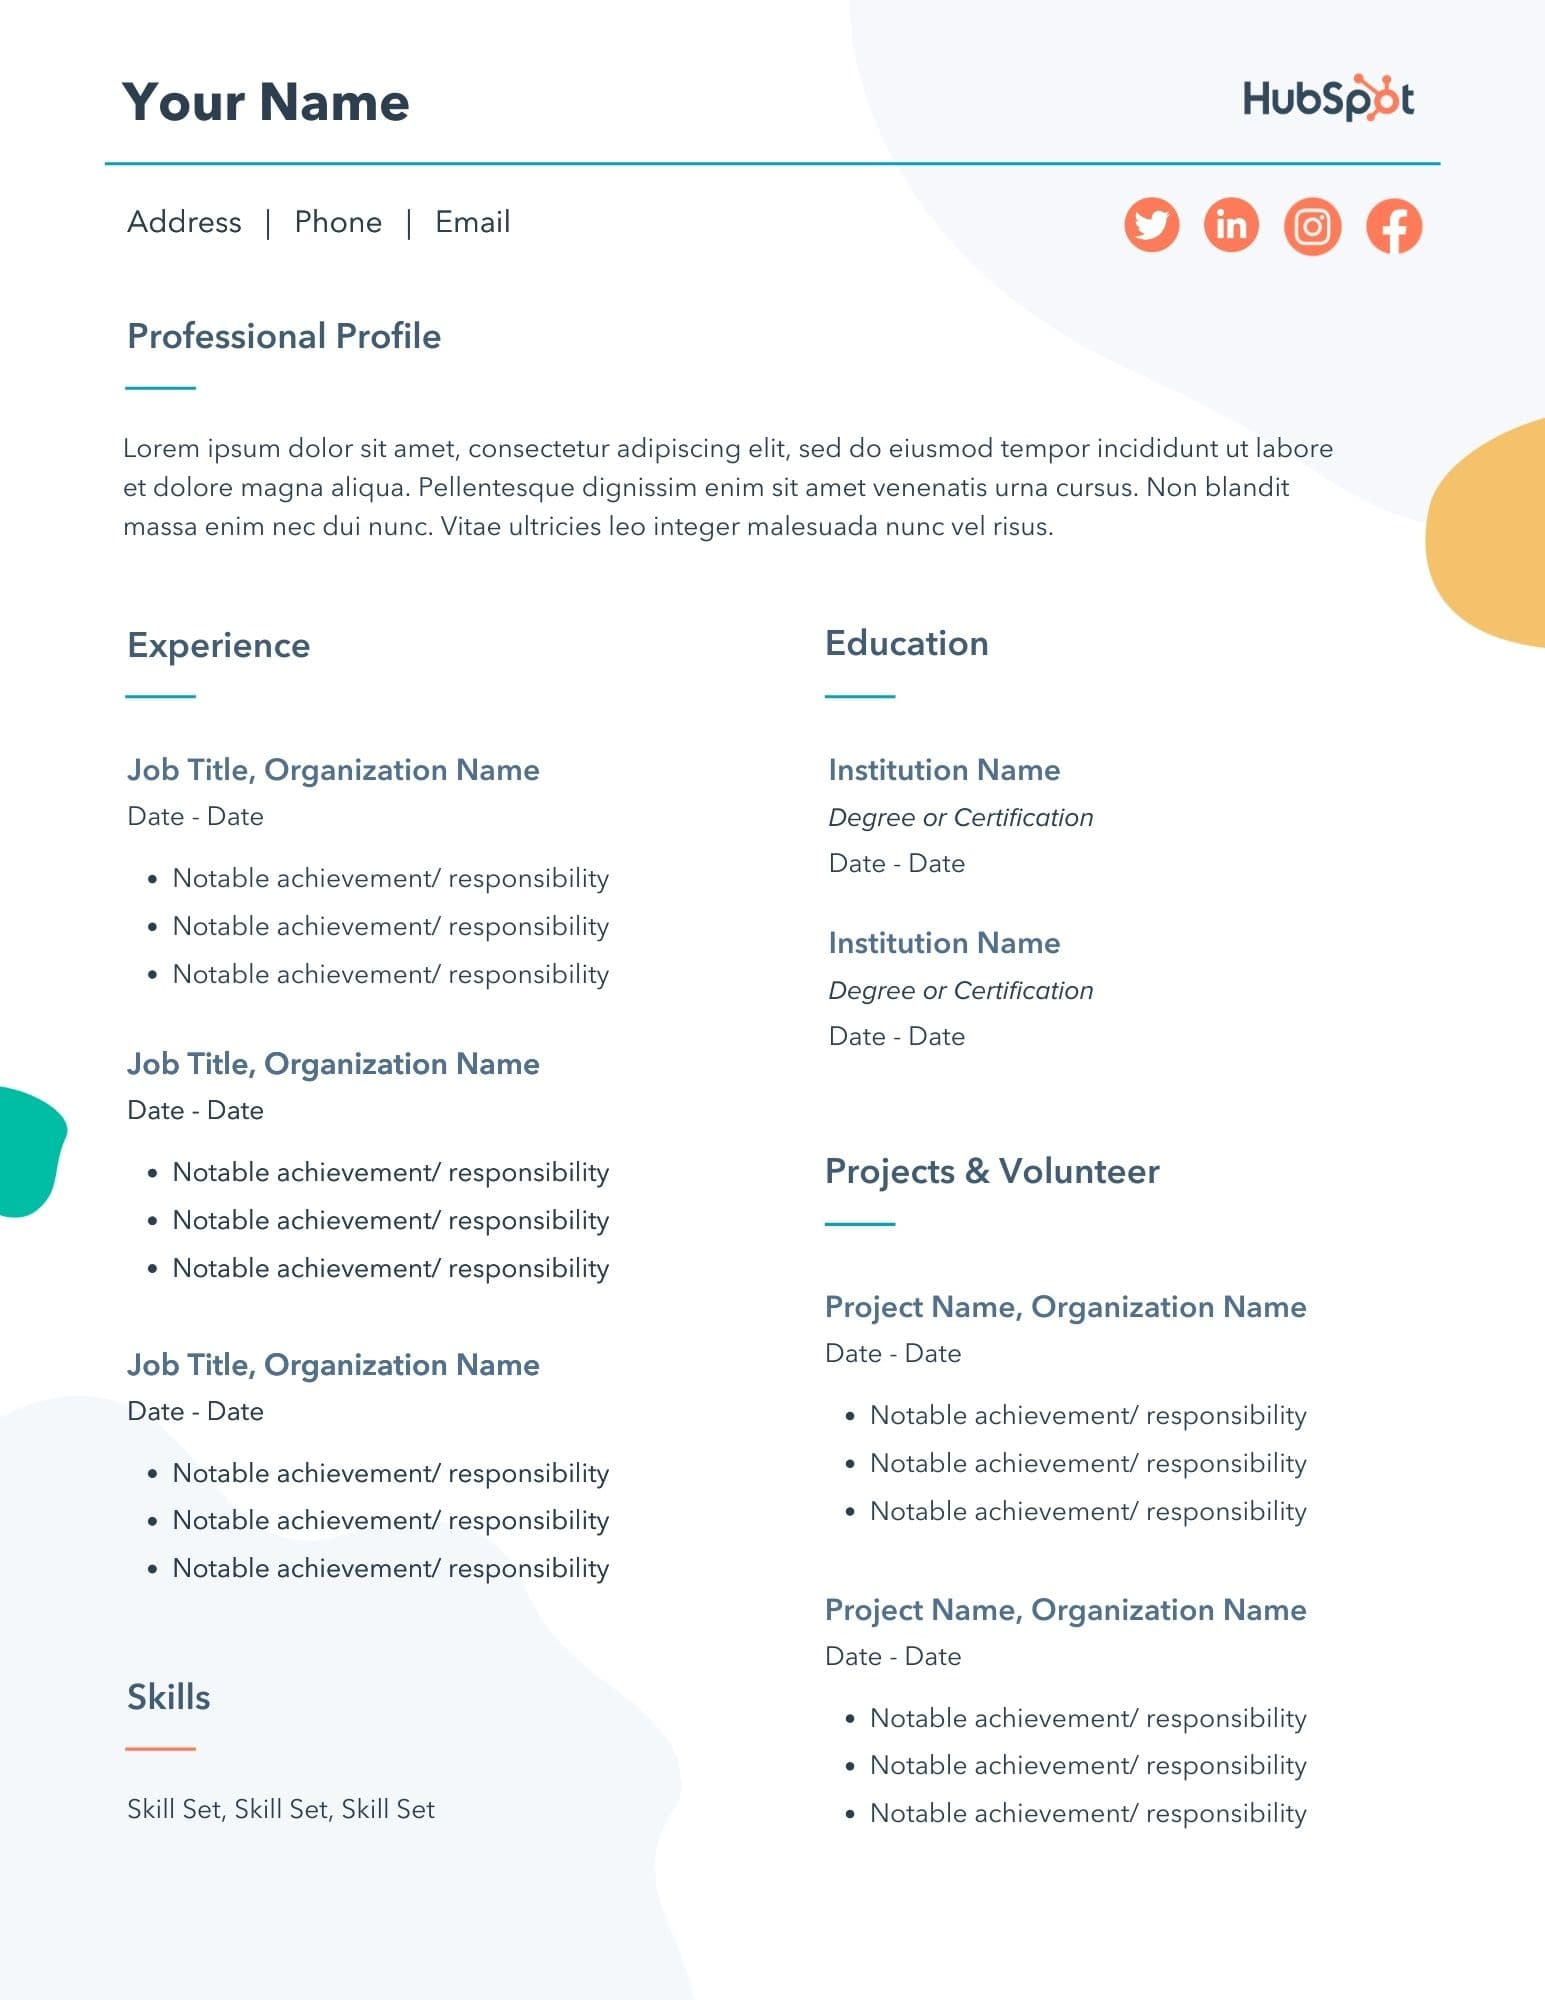 free resume templates for microsoft word to make your own executive template rules Resume Executive Resume Template 2020 Free